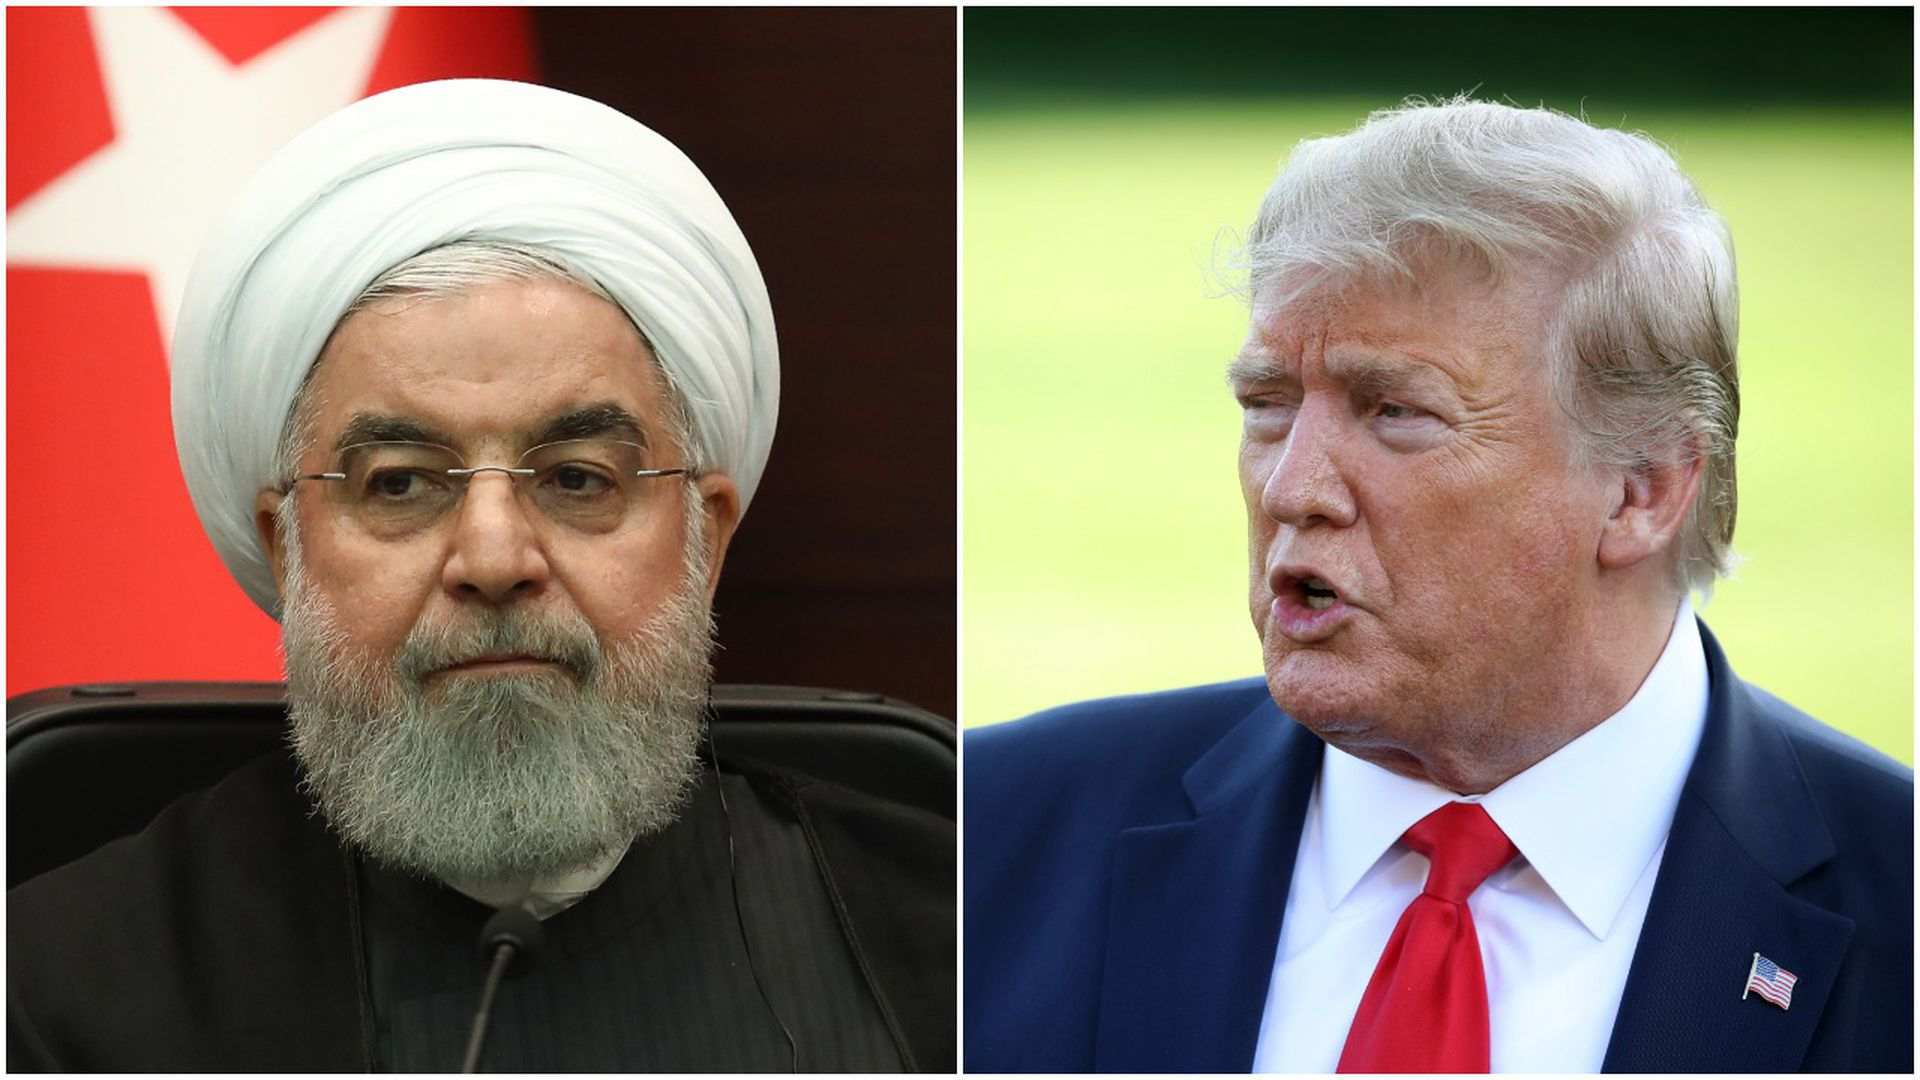 Collage of Iranian President Hassan Rouhani and President Trump